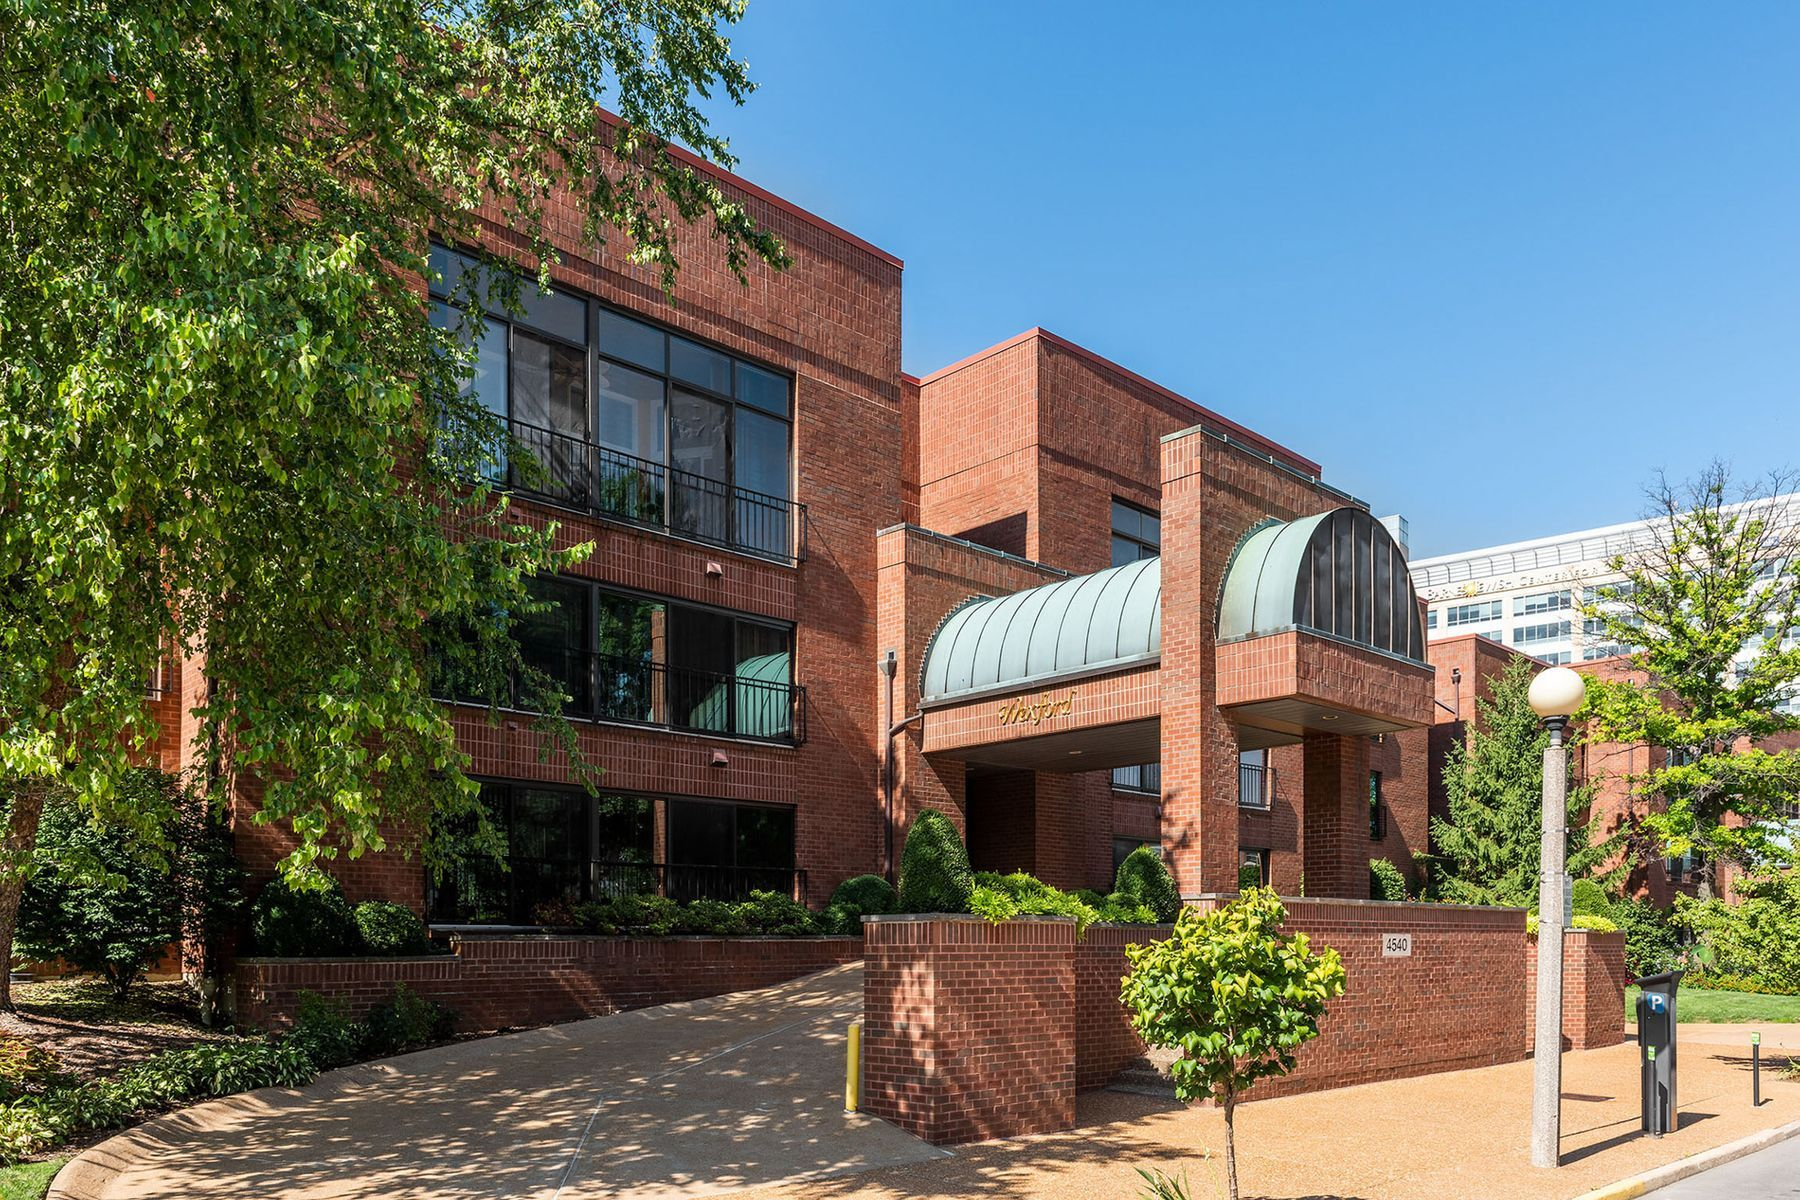 Property for Sale at Wexford Condo 4540 Laclede Avenue 107 St. Louis, Missouri 63108 United States